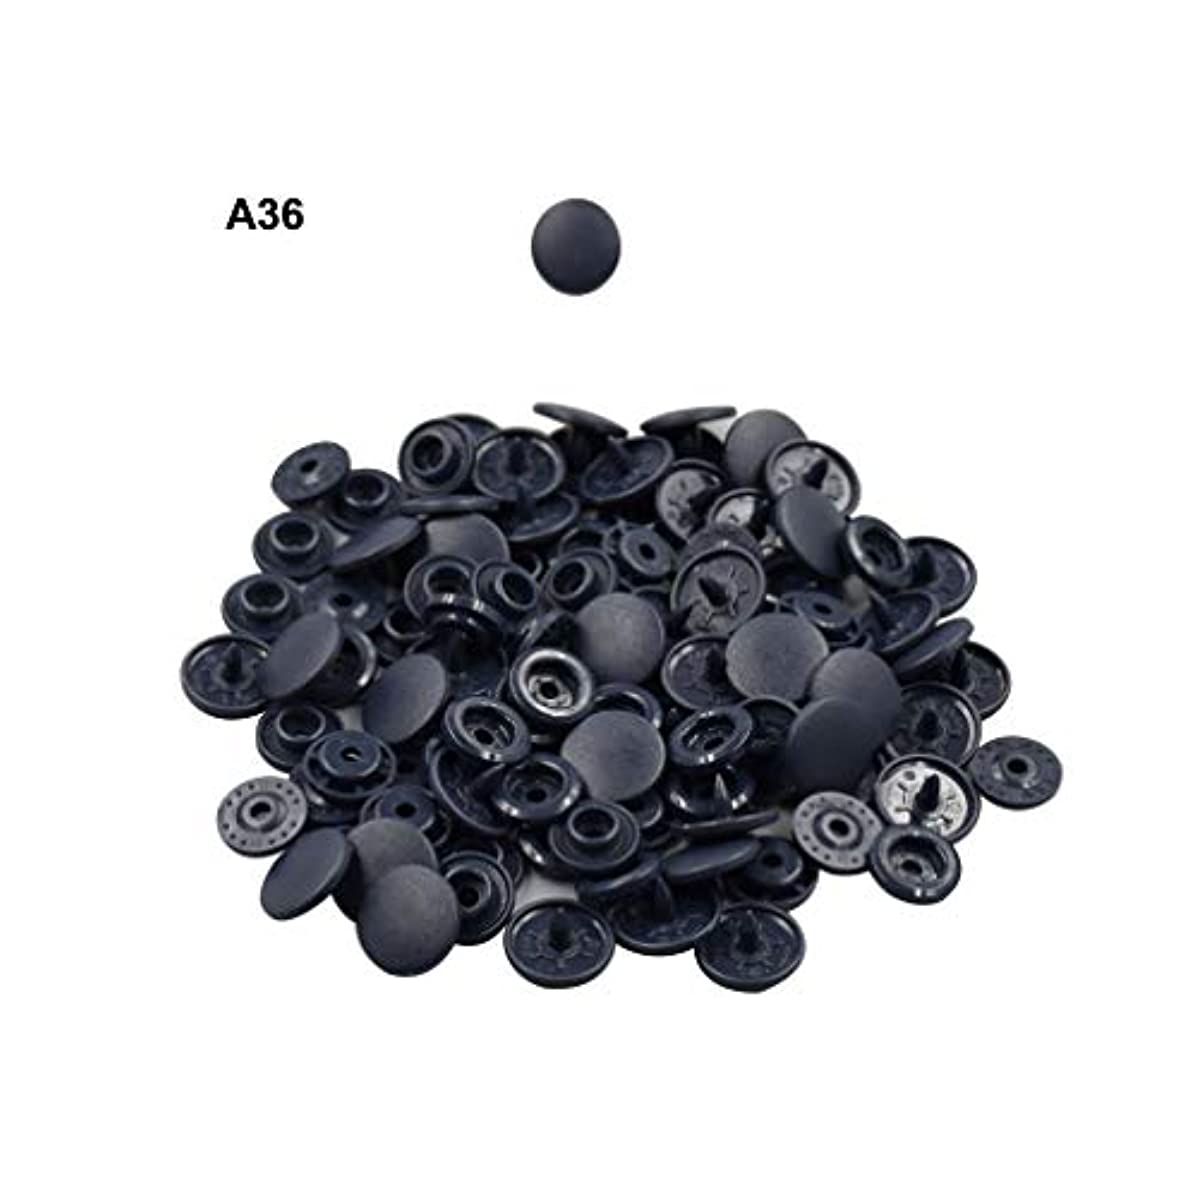 Blue Black Plastic Snap Fasteners Size 20 100Sets Snap On Clothing Plastic Snap Button Matte T5 Round for Baby Clothes -A36